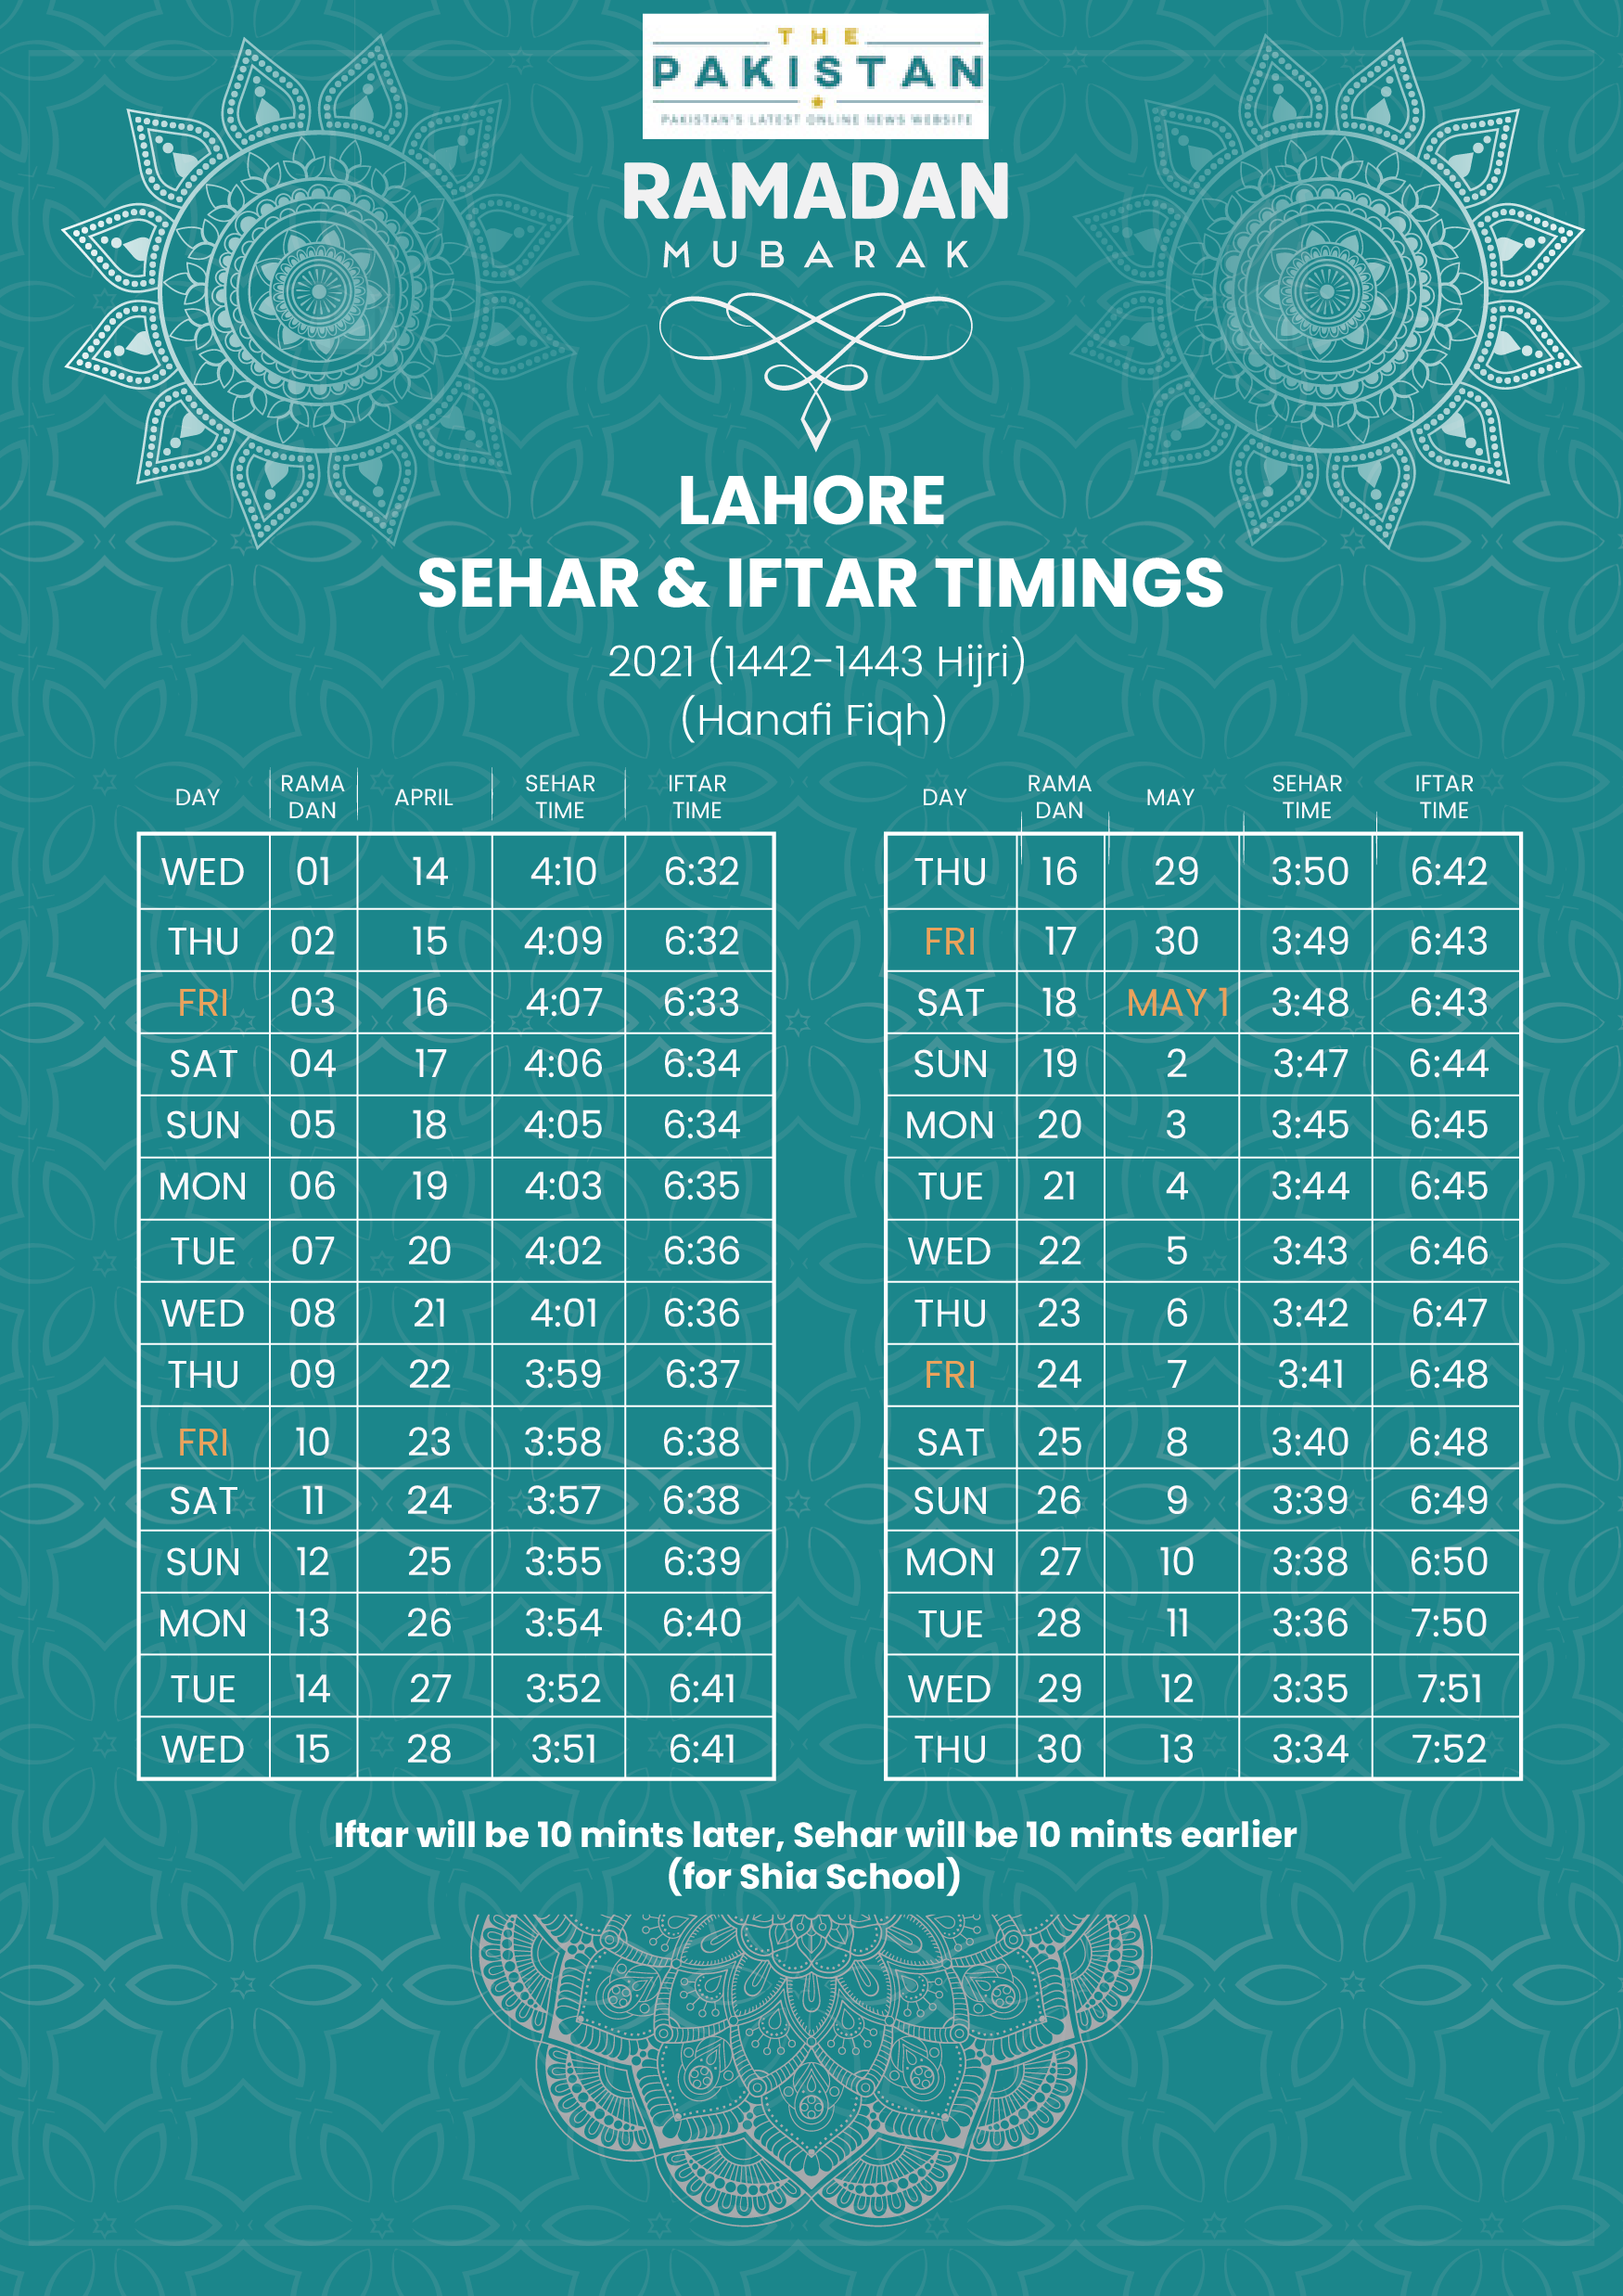 SEHRI & IFTAR TIME - LAHORE